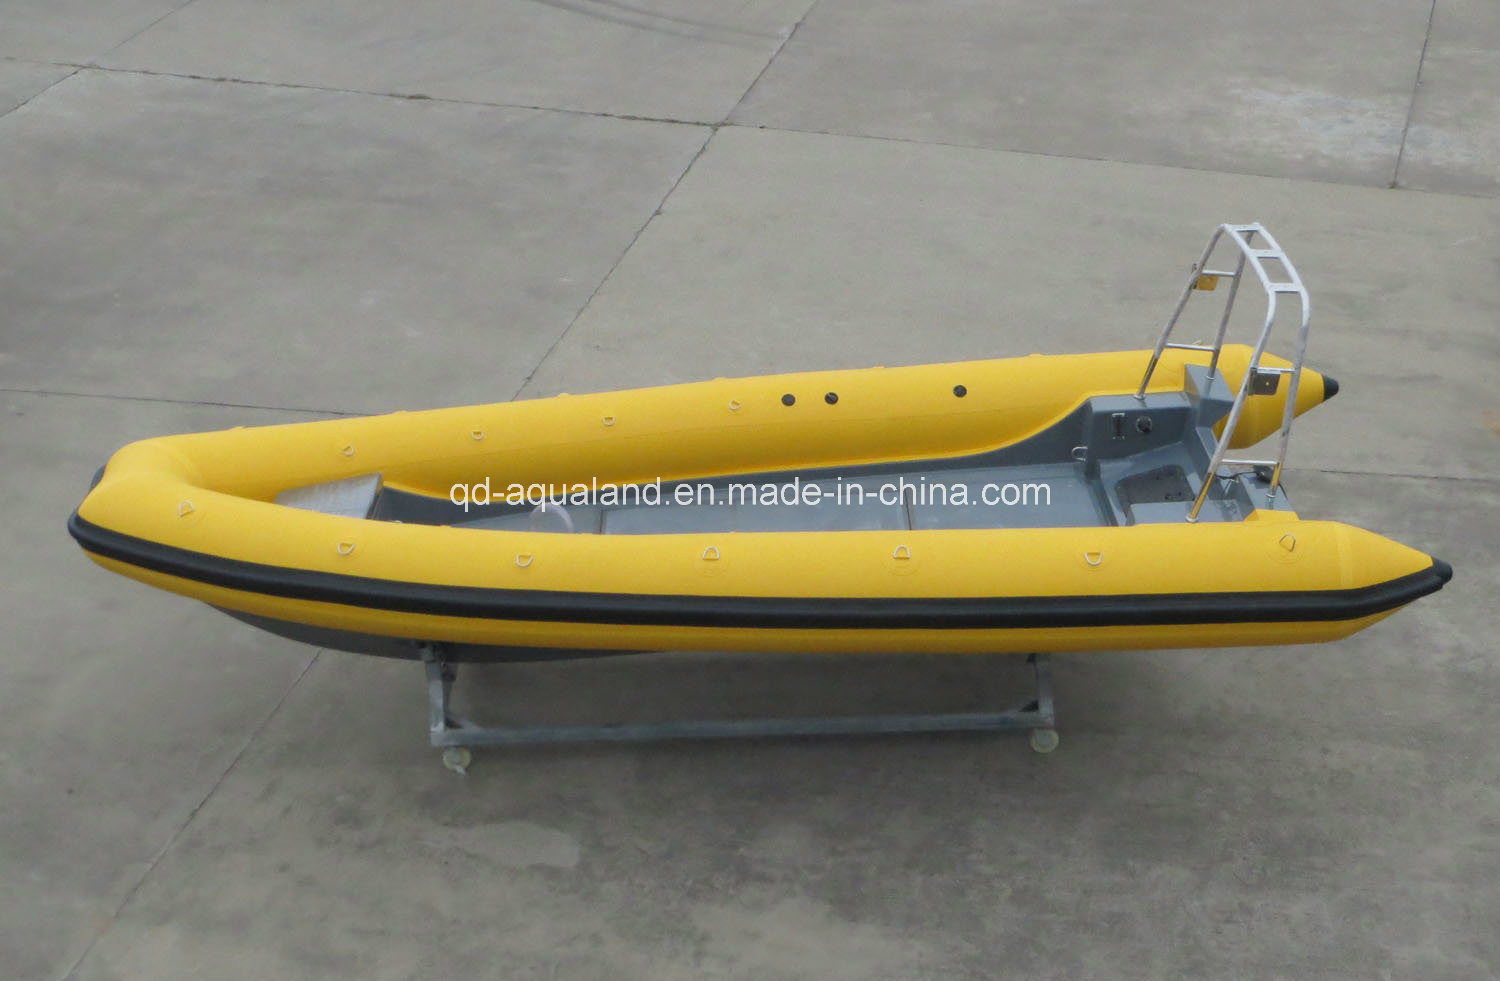 China Aqualand 19feet 5.8m Rigid Inflatable Rescue Patrol Boat/Rib Motor Boat/Fishing Boat (rib580t)